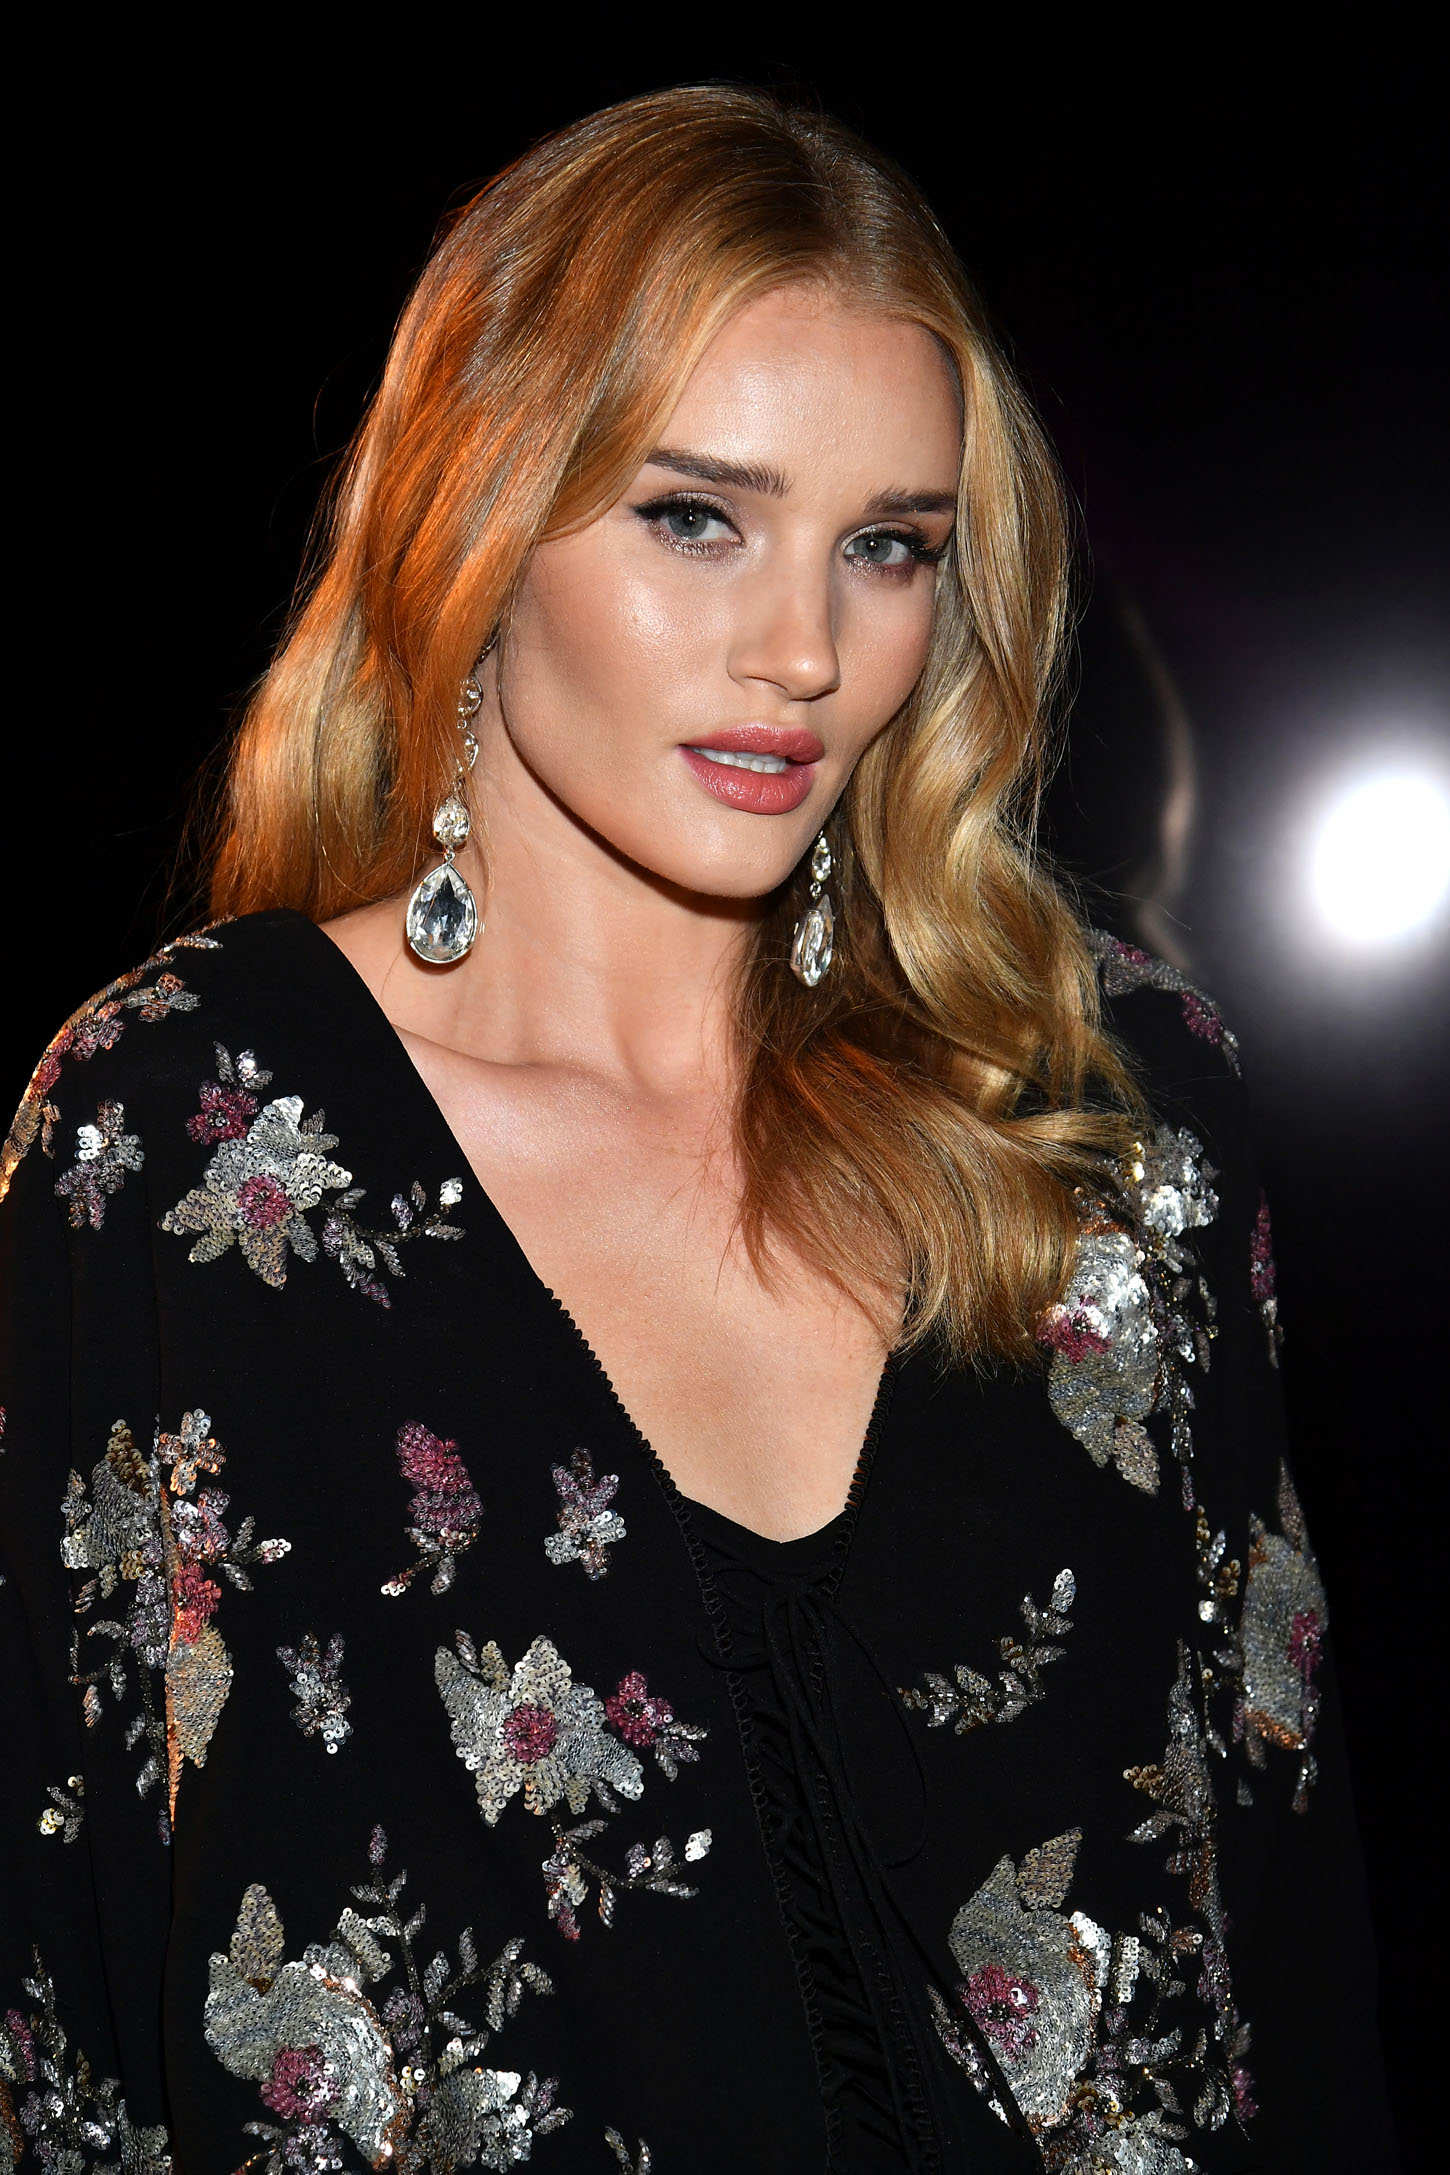 PARIS, FRANCE - FEBRUARY 27:  Rosie Huntington-Whiteley attends the Saint Laurent show as part of the Paris Fashion Week Womenswear Fall/Winter 2018/2019 on February 27, 2018 in Paris, France.  (Photo by Dominique Charriau/WireImage)